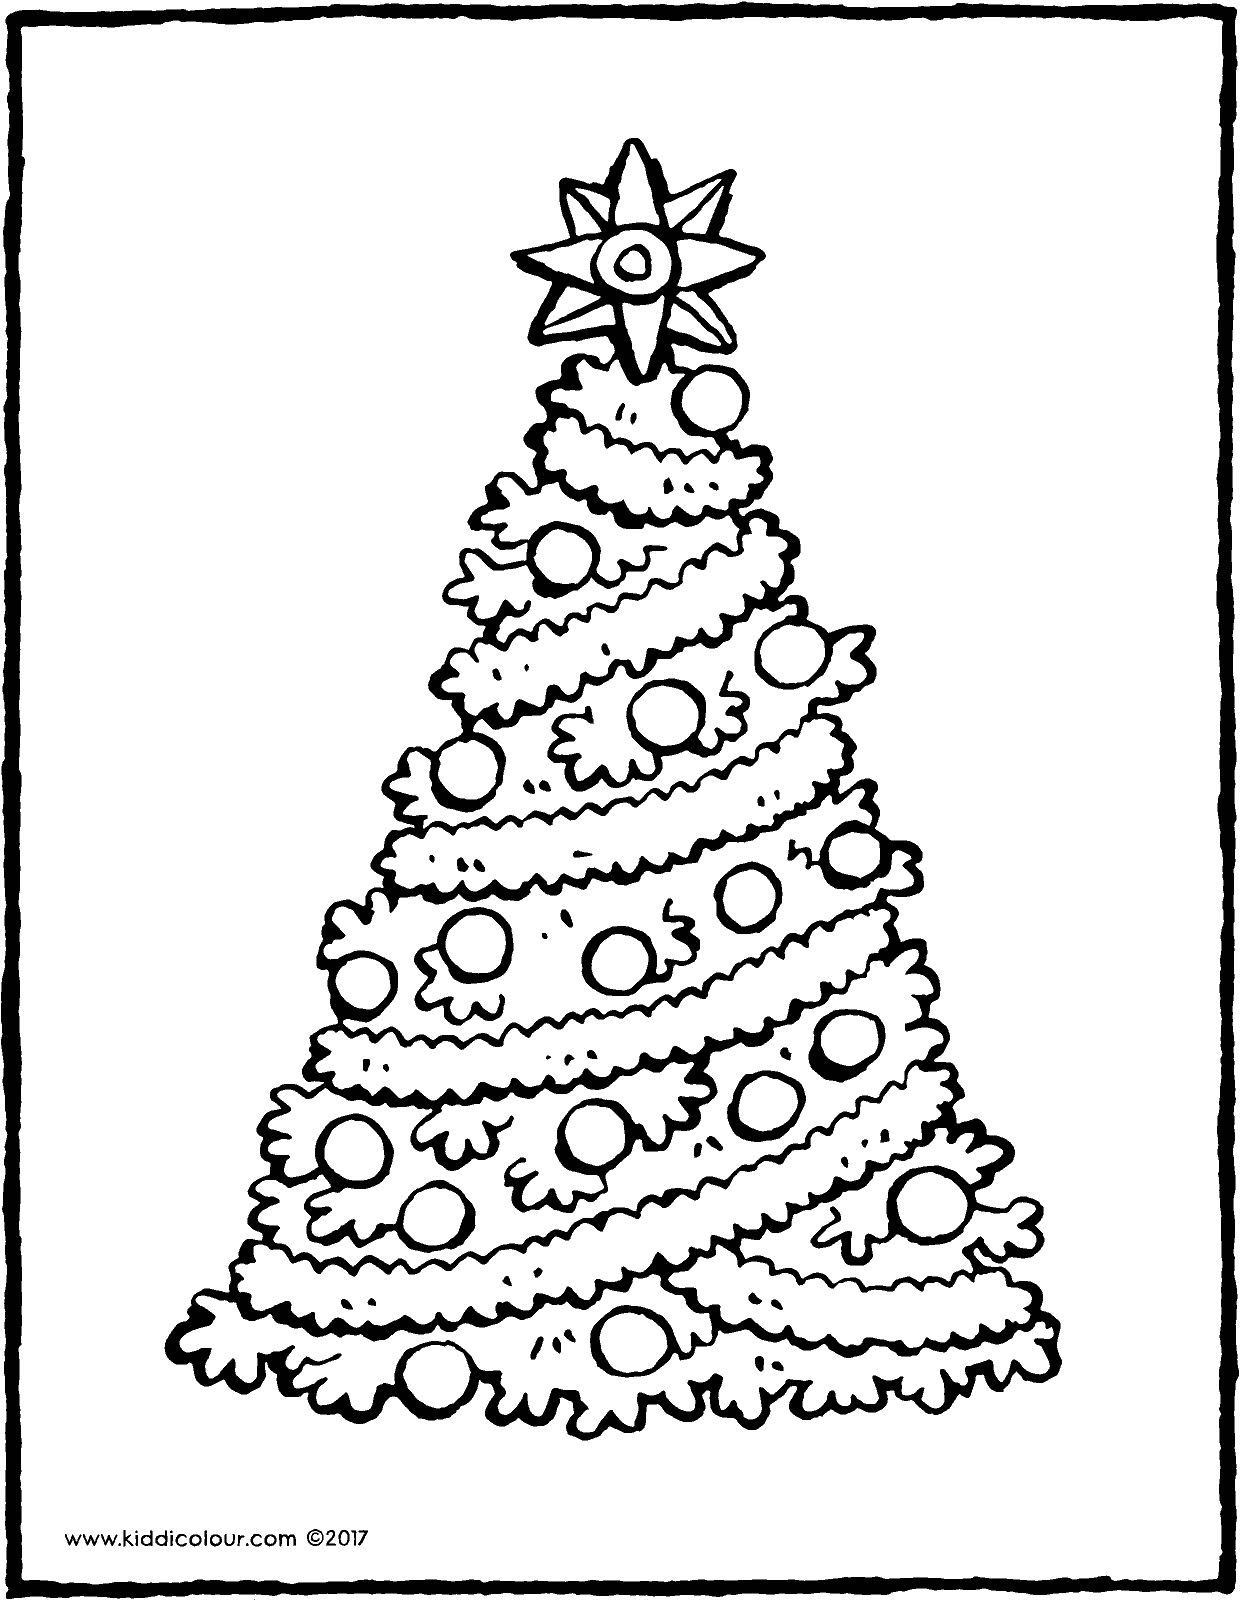 a Christmas tree with a big star colouring page page drawing picture 01V